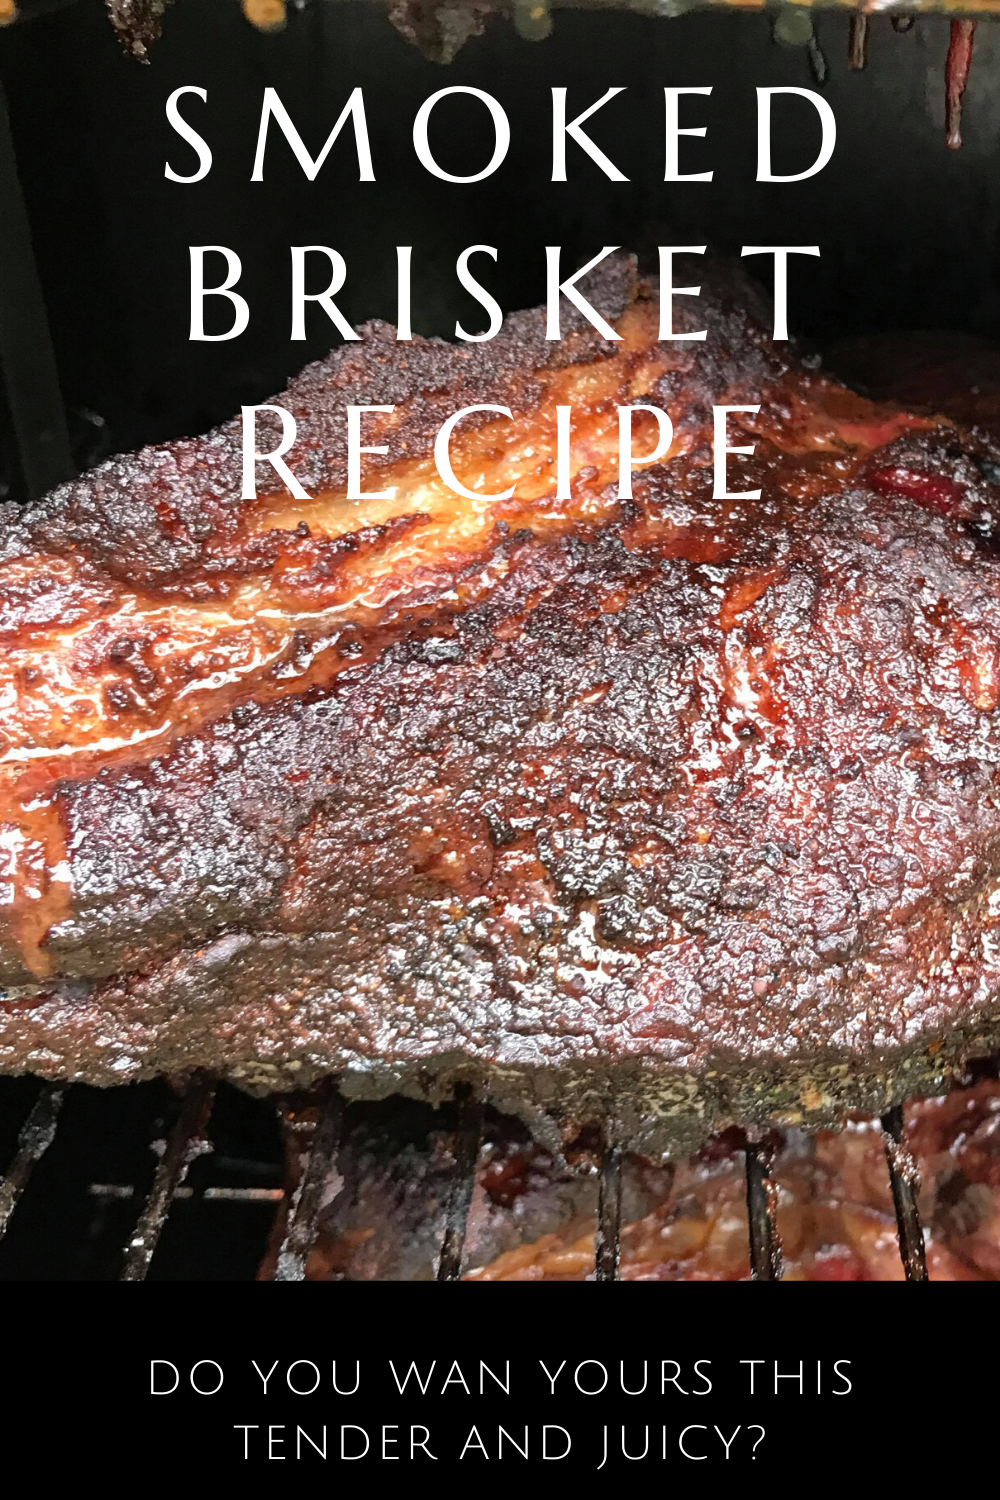 [10 Steps] How To Smoke A Brisket in Your Electric Smoker (Jan 2020)